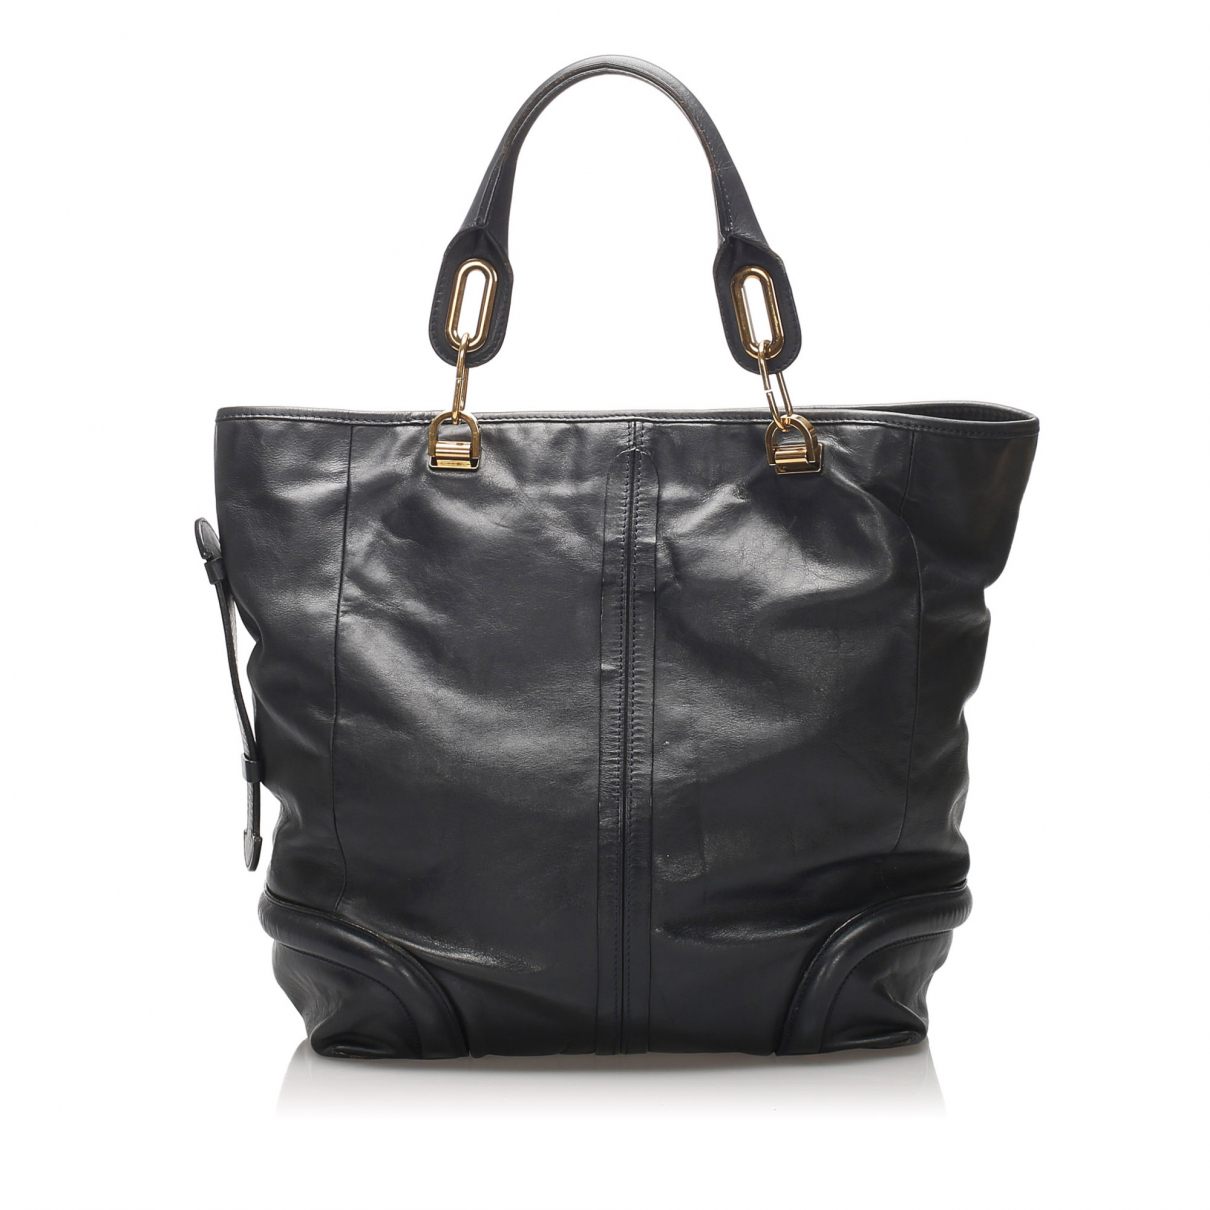 Chloé N Black Leather handbag for Women N